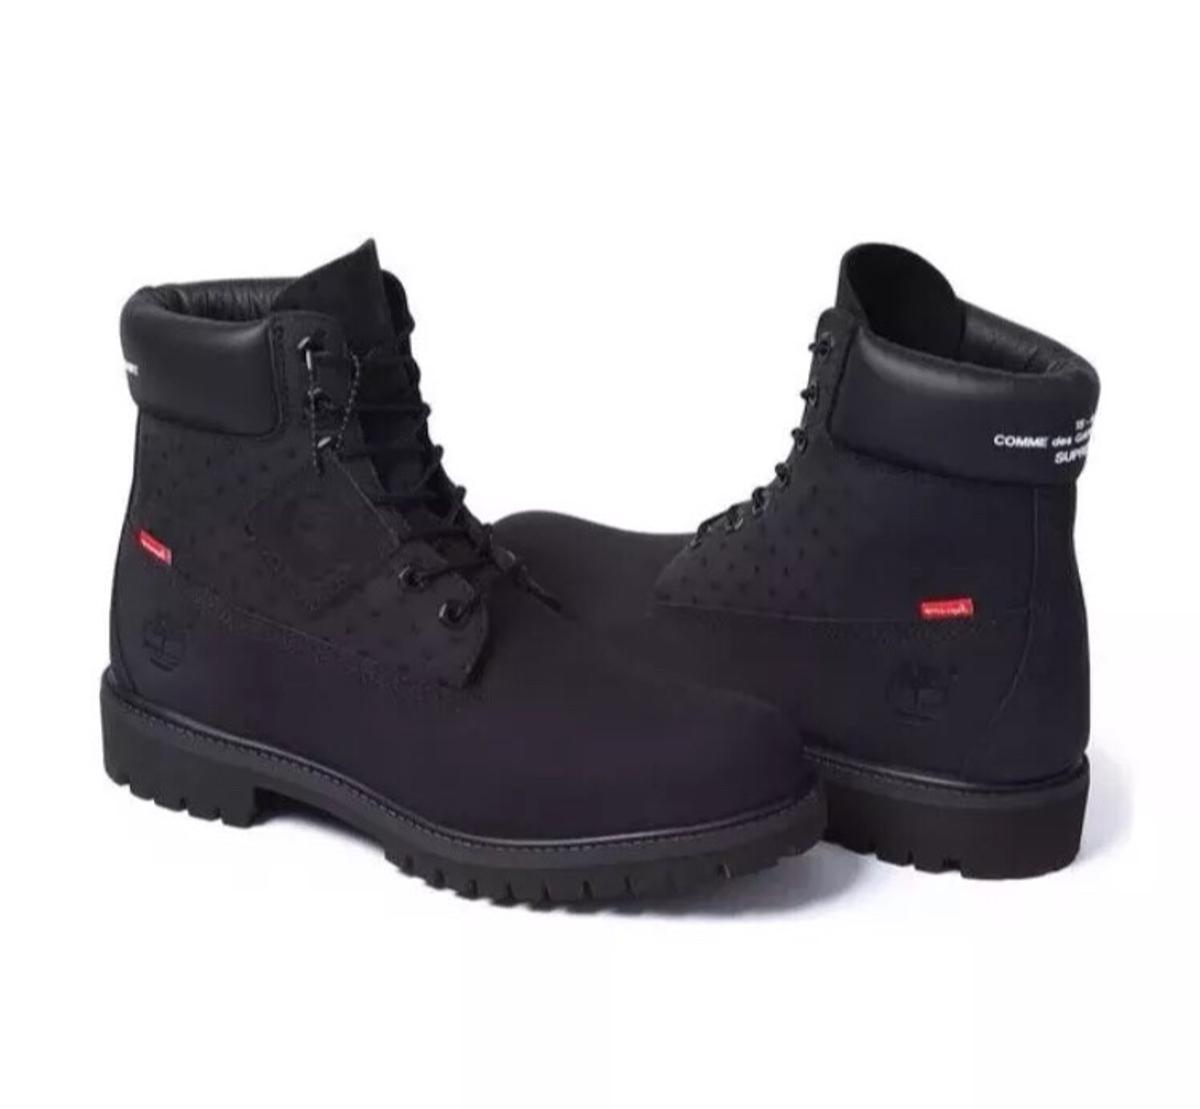 biggest discount competitive price newest collection Timberland x Supreme 6 Inch Boot Size 9.5 UK